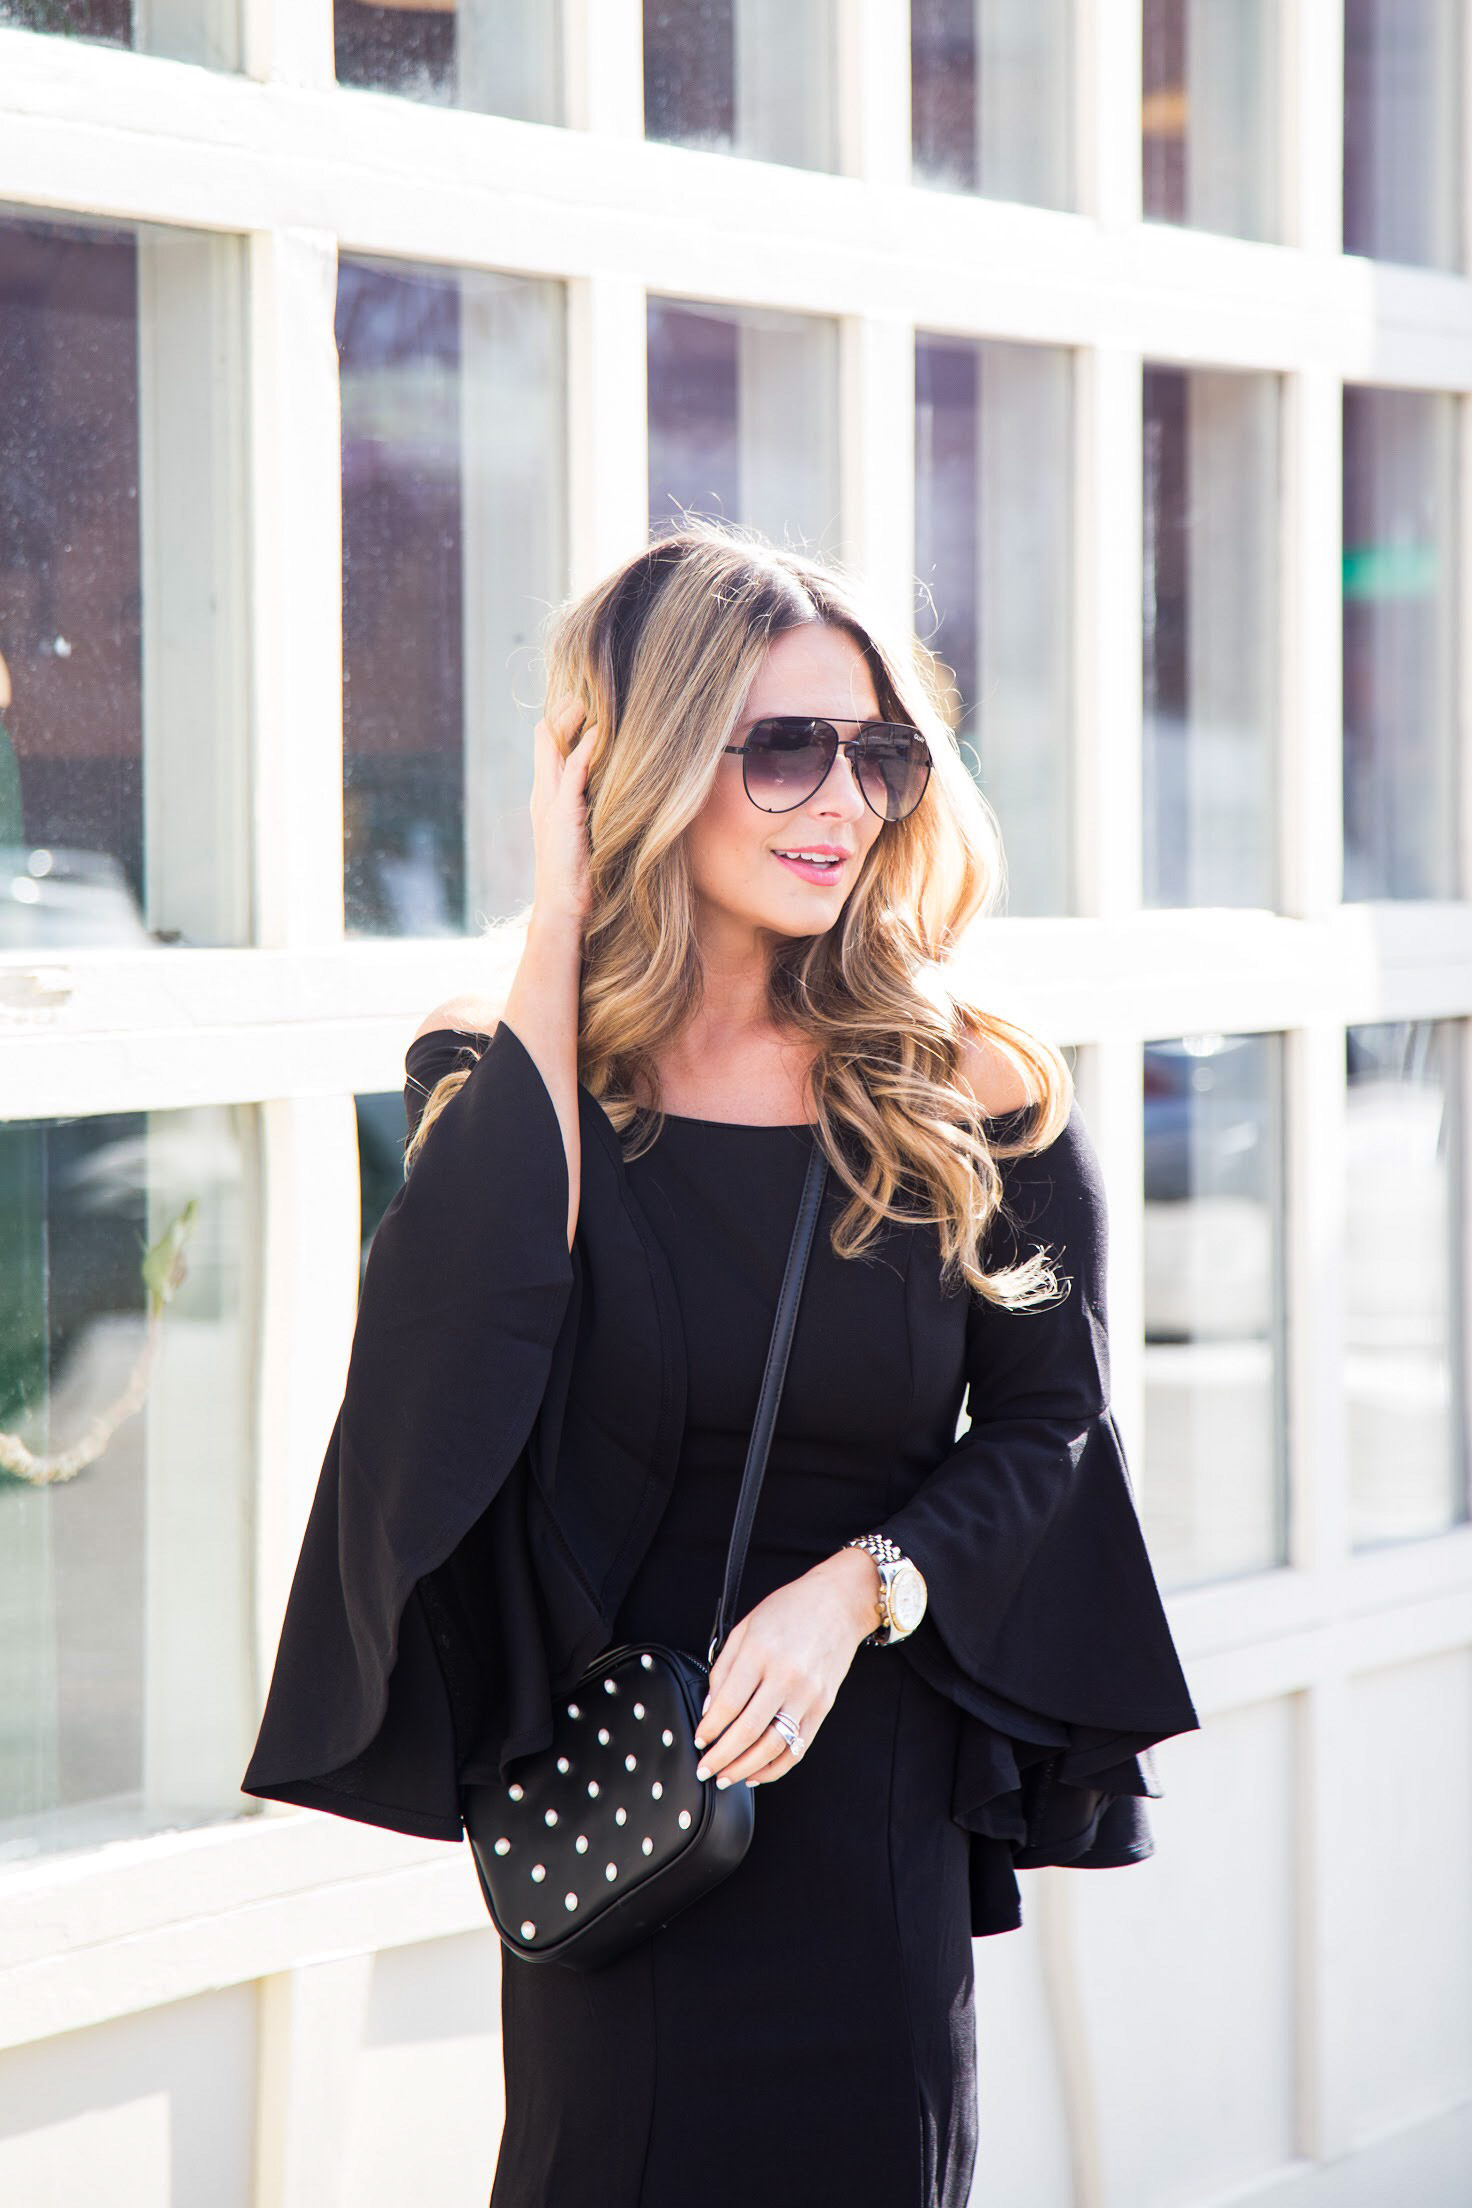 off the shoulder dress with pink Sam Edelman shoes and Quay sunglasses